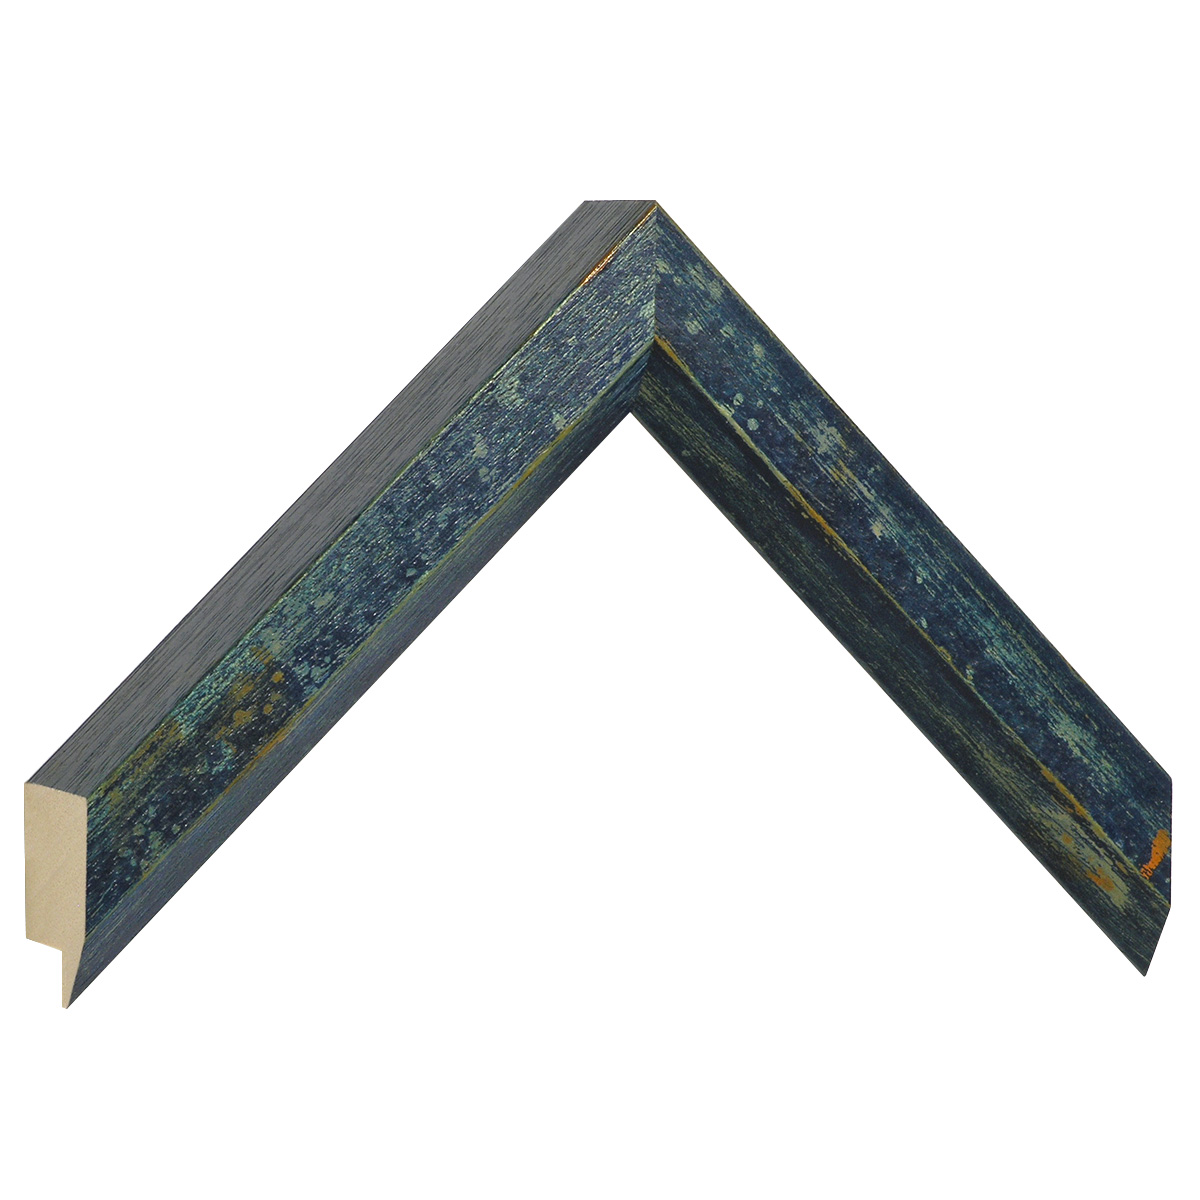 Moulding ayous, width 27mm, height 35, distressed blue